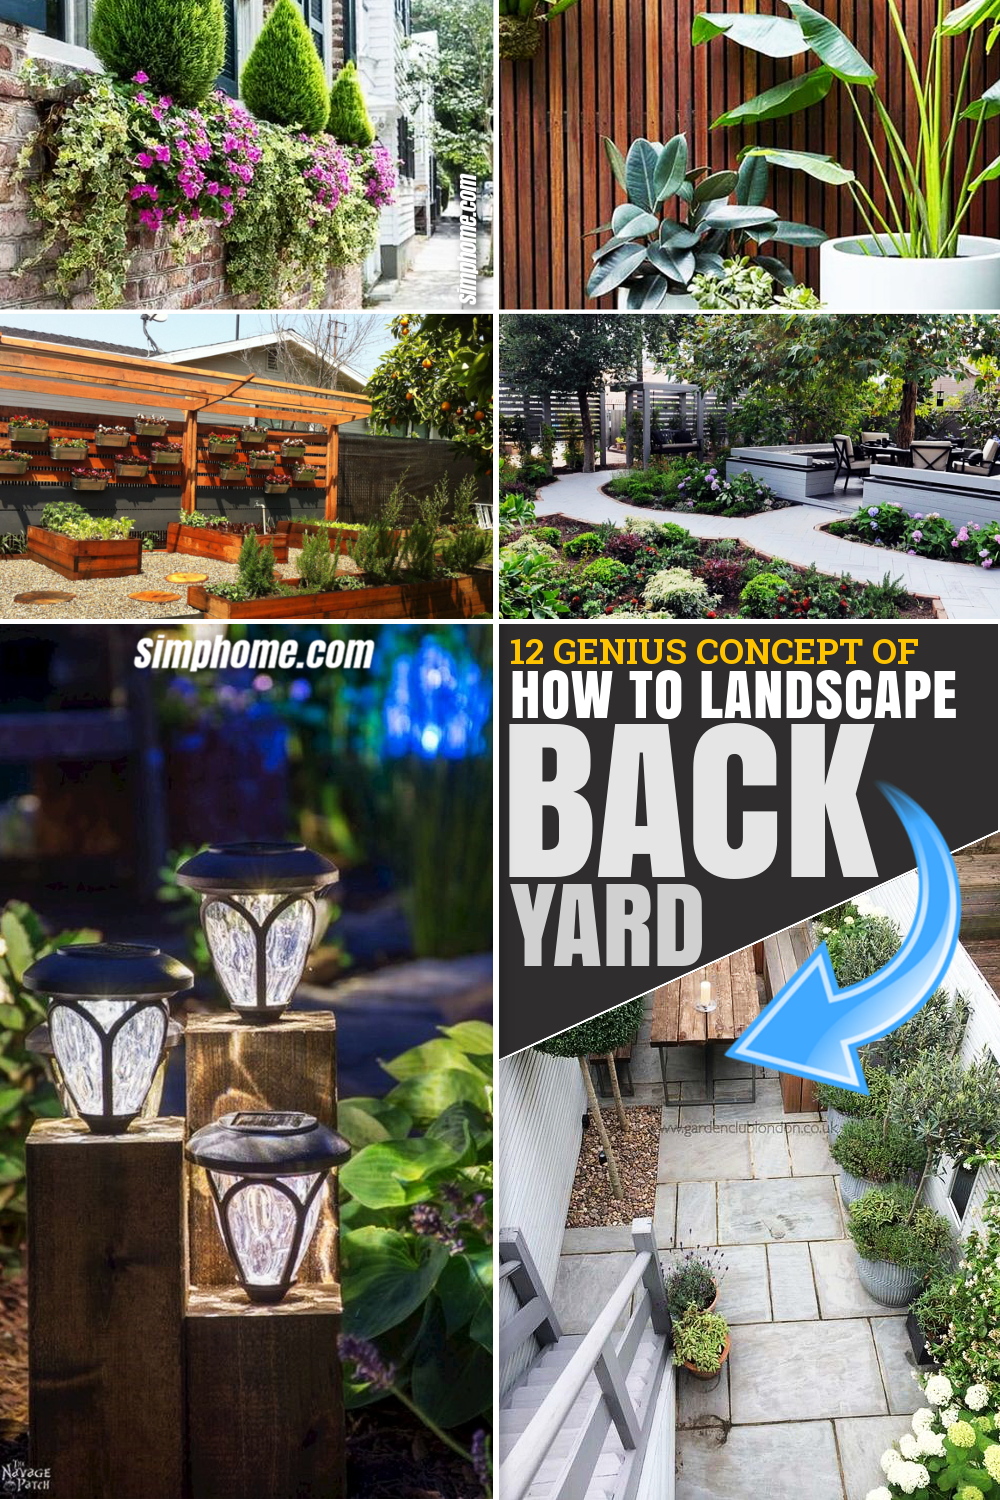 From SIMPHOME.COM 12 Genius Concepts of How to Make Landscape Ideas For Backyard Pinterest Featured Image